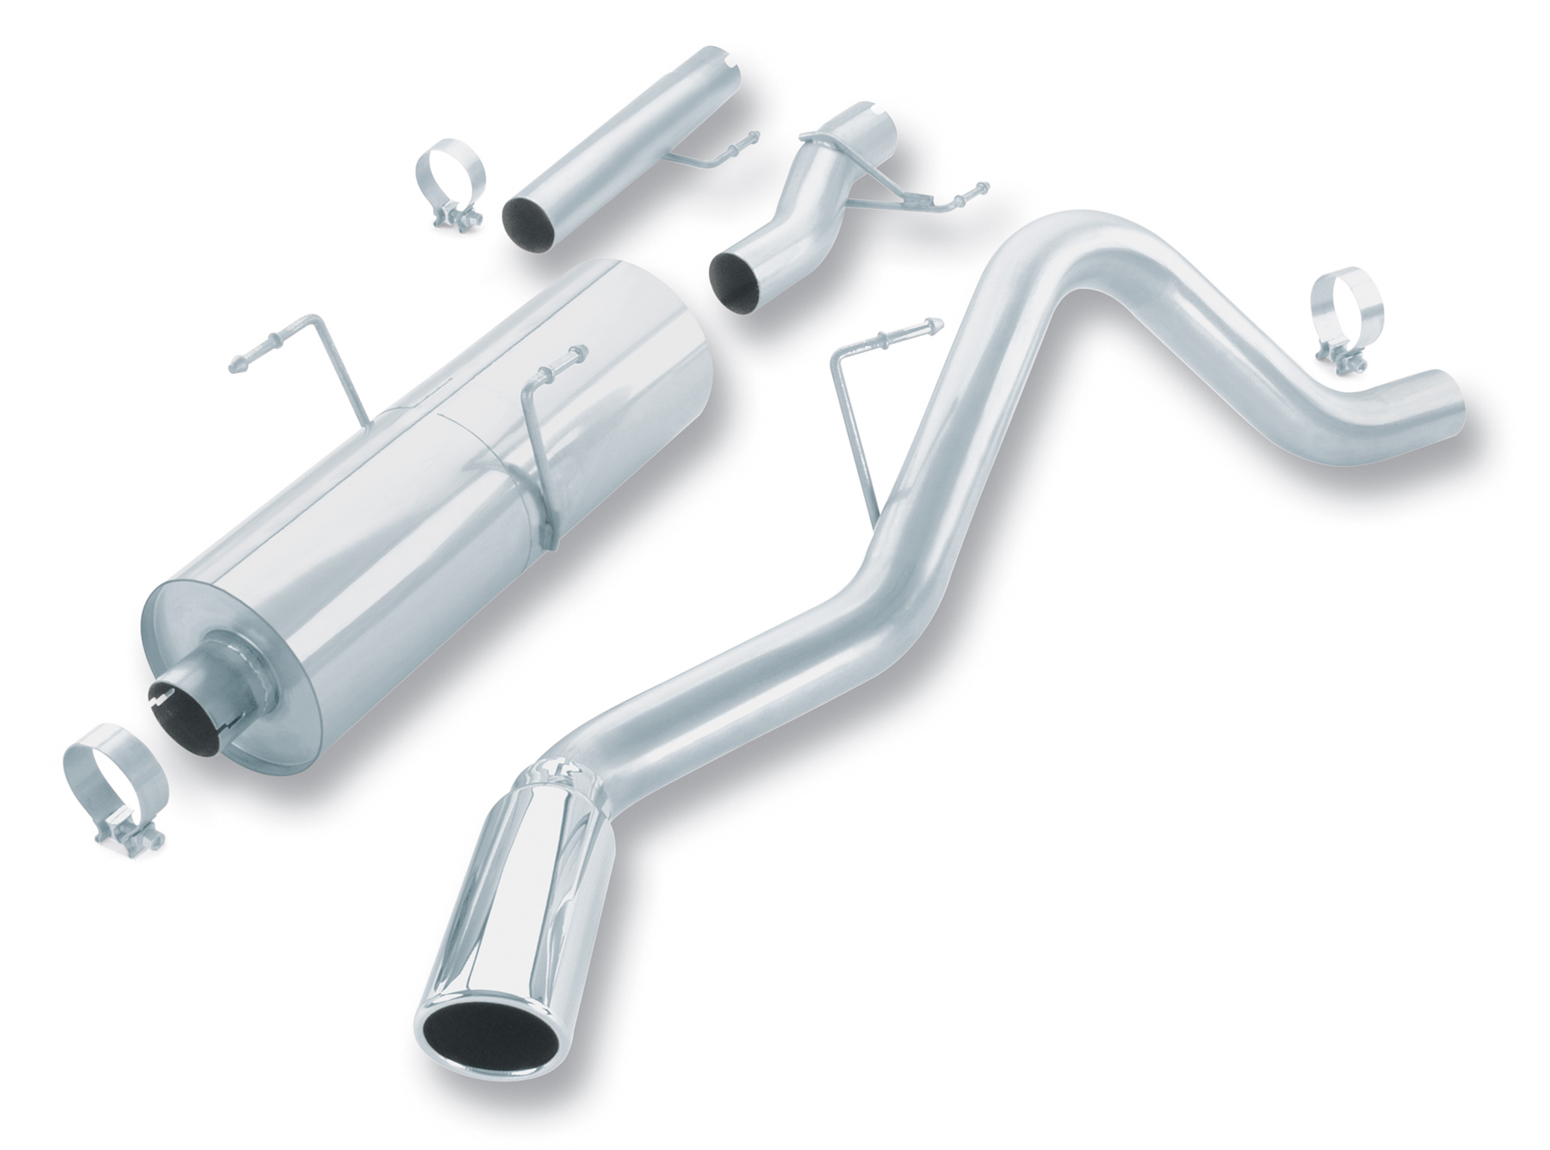 "Dodge Ram 1500 5.7l V8 Hemi 2003-2005 Borla 3"" Cat-Back Exhaust System - Single Round Rolled Angle-Cut  Long X Single Round Rolled Angle-Cut Intercooled Tips"" Dia"